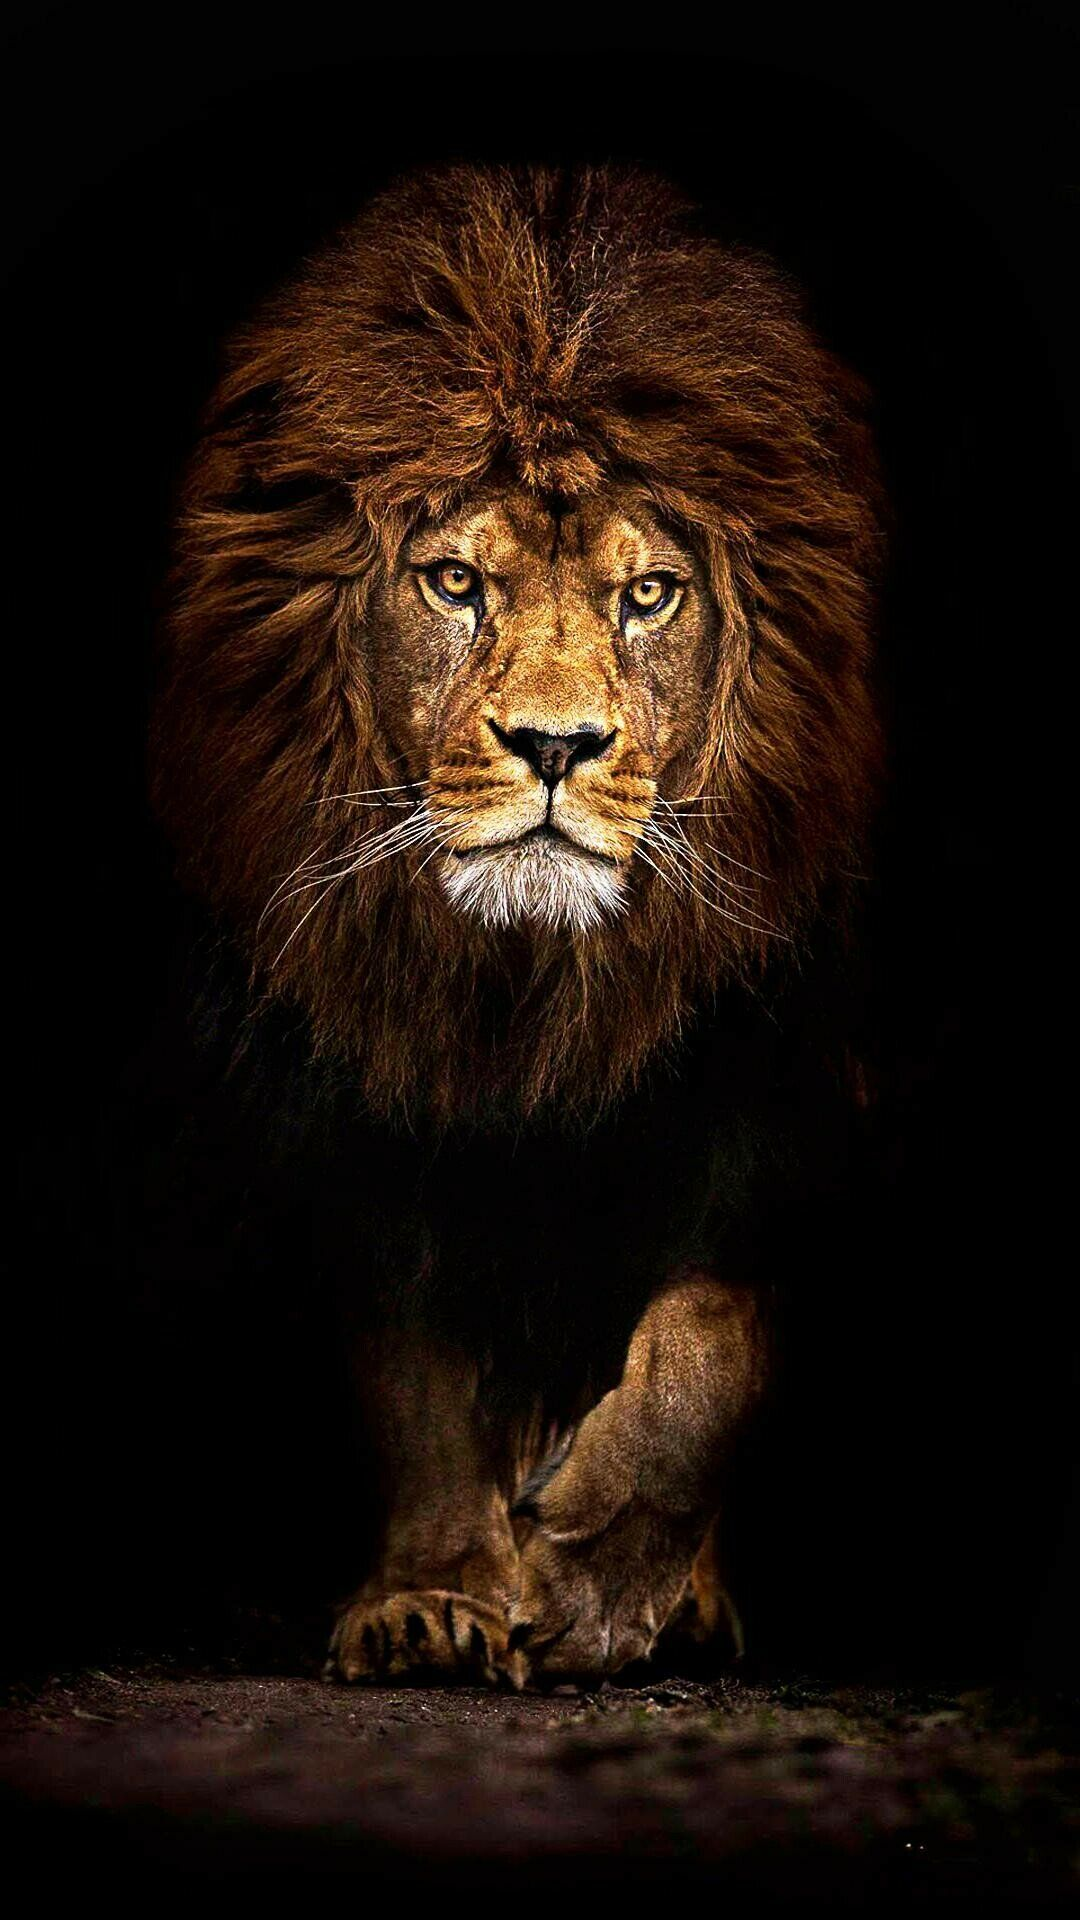 Pin By Sabahuddin Hemmat On Animals In 2020 Lion Images Lion